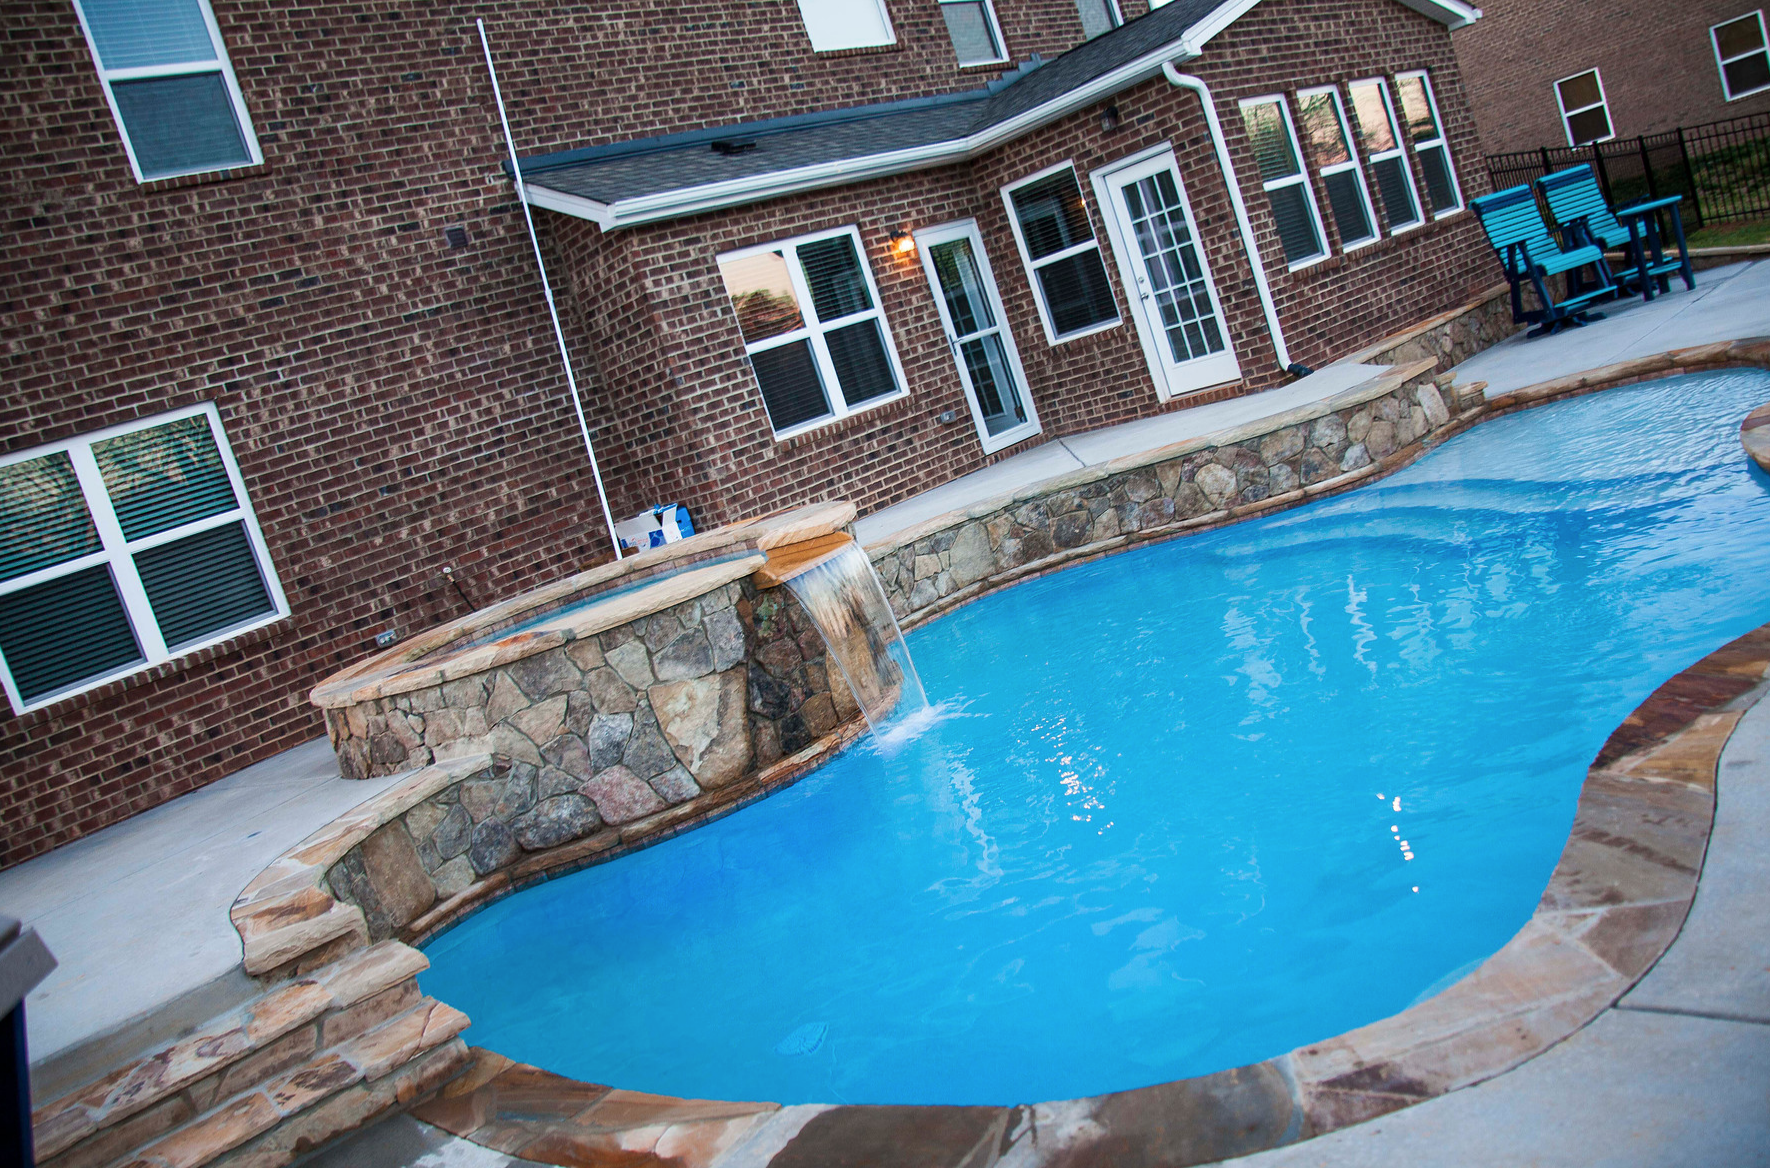 Fiberglass swimming pools vs concrete swimming pools which - Concrete swimming pools vs fiberglass ...